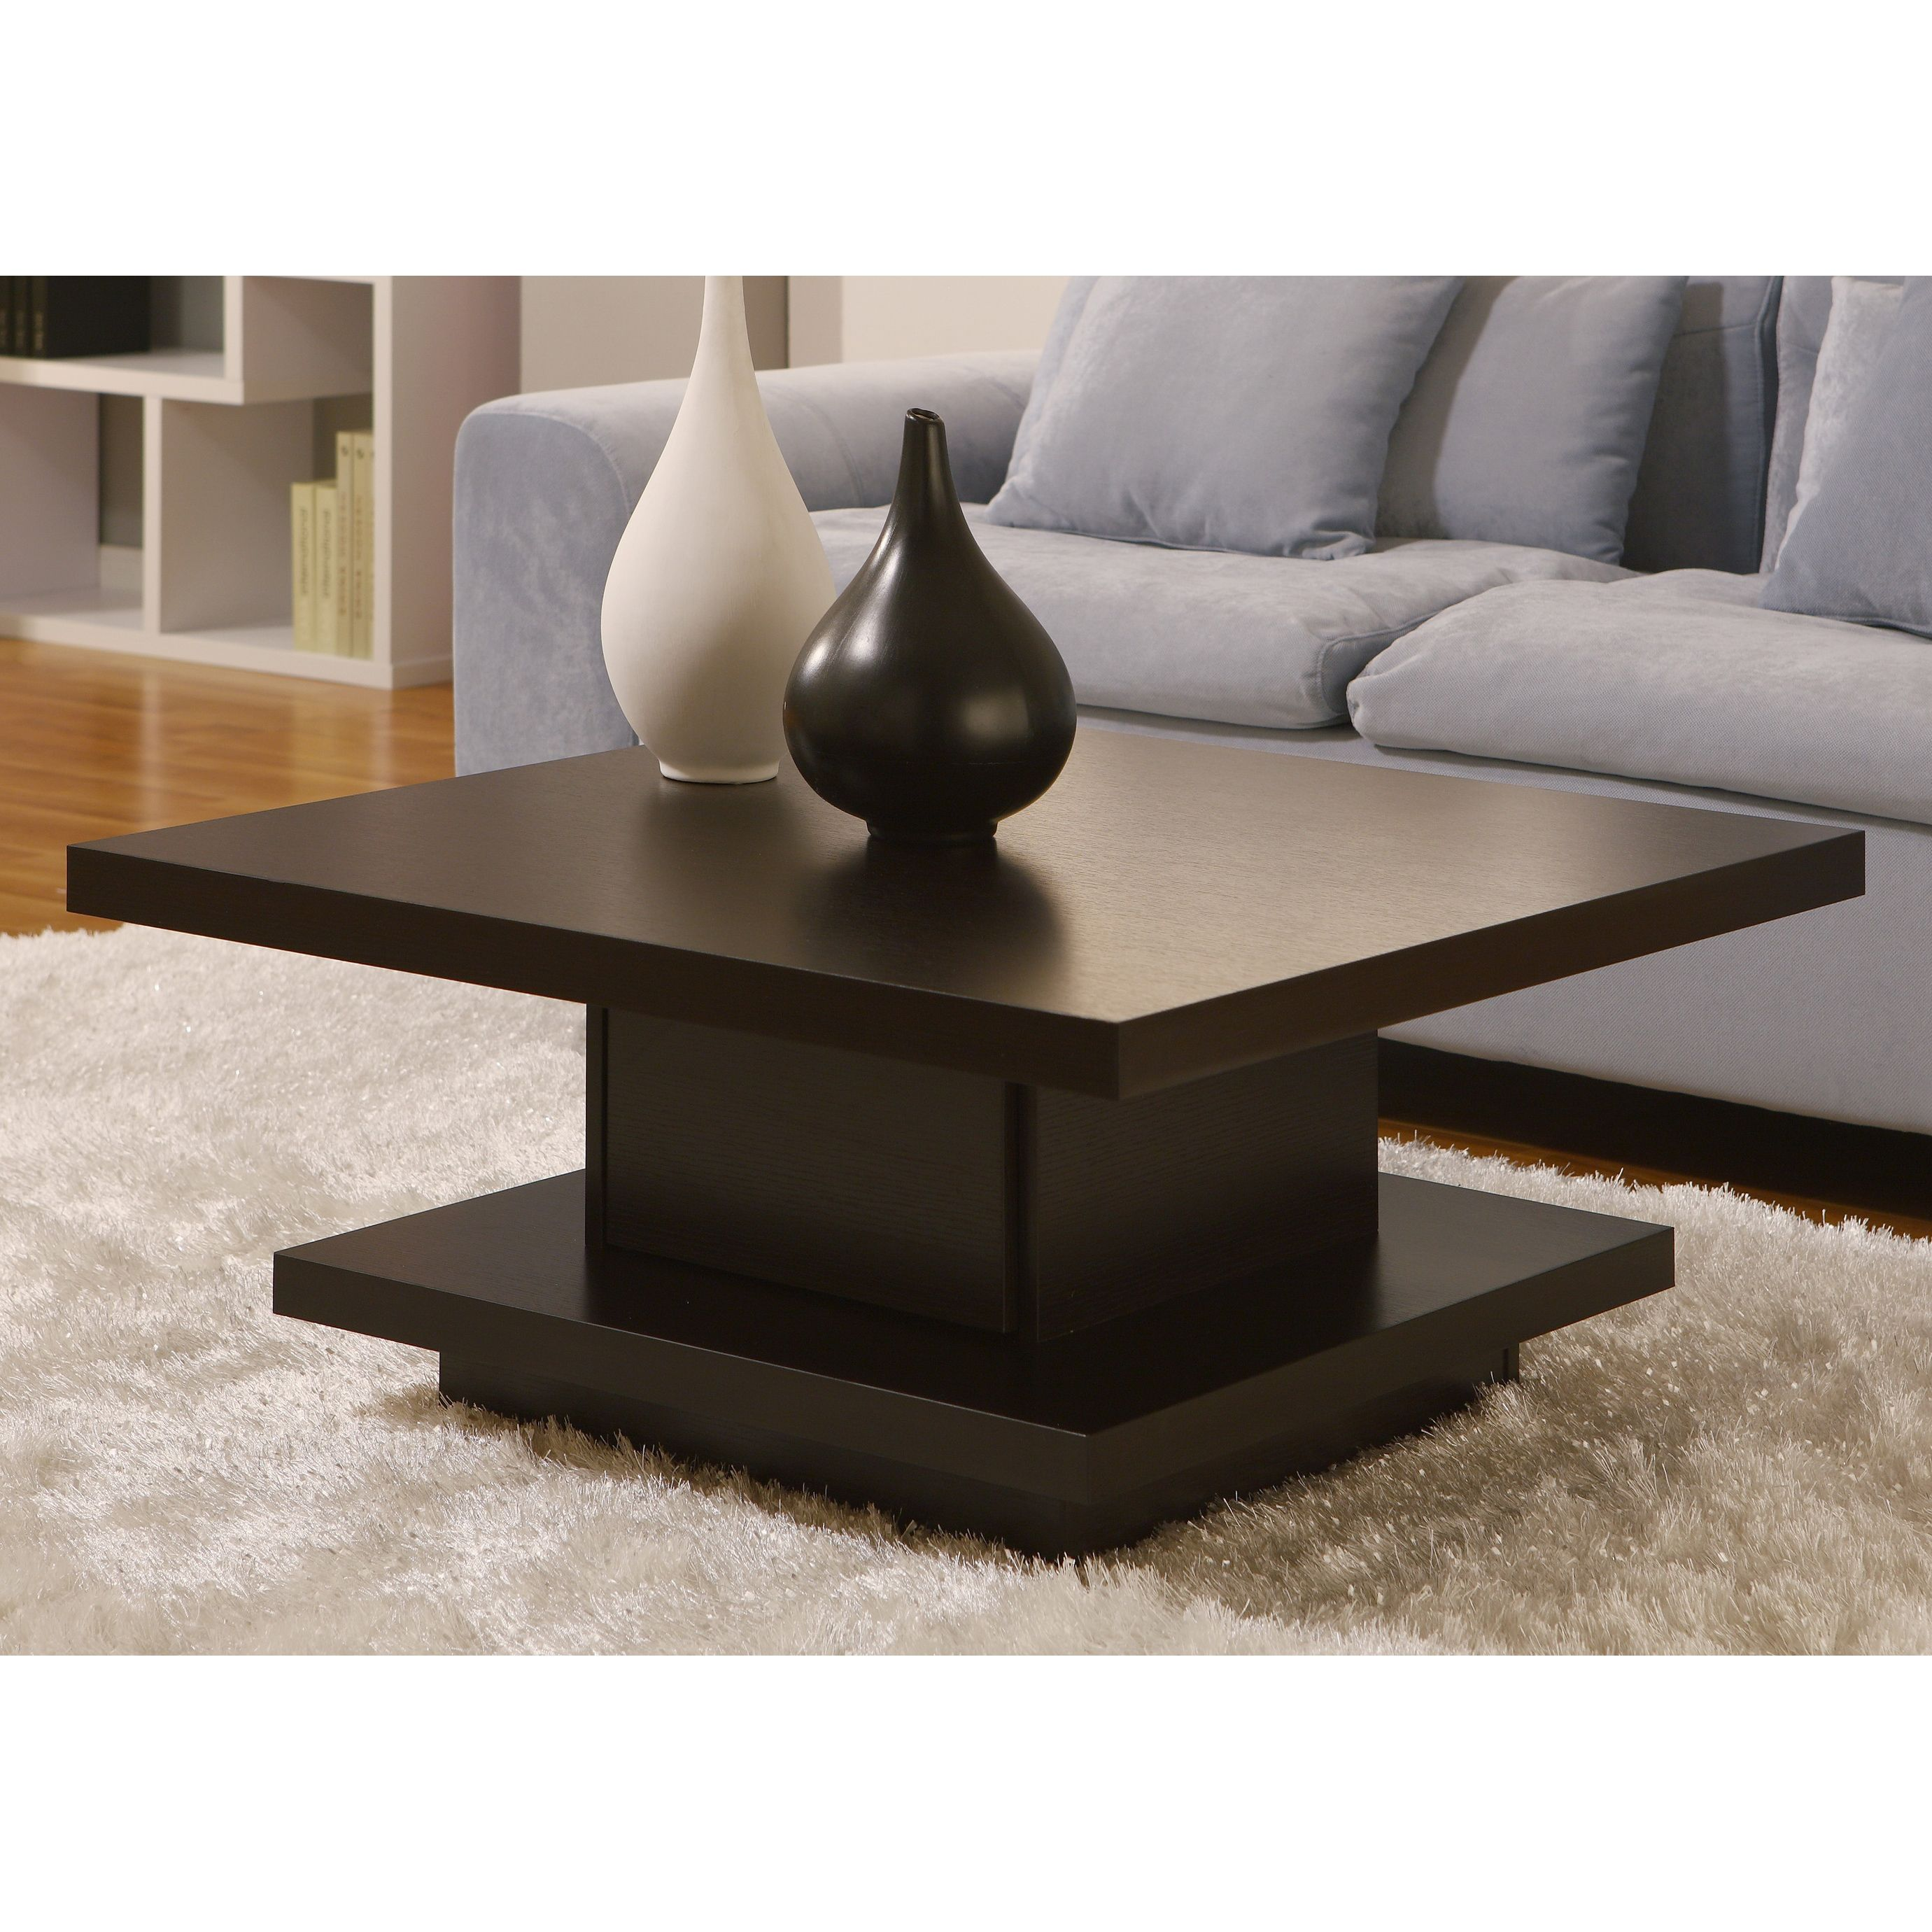 Furniture of america wakiaka unique pagoda coffee table furniture of america wakiaka unique pagoda coffee table overstock shopping great deals on geotapseo Image collections